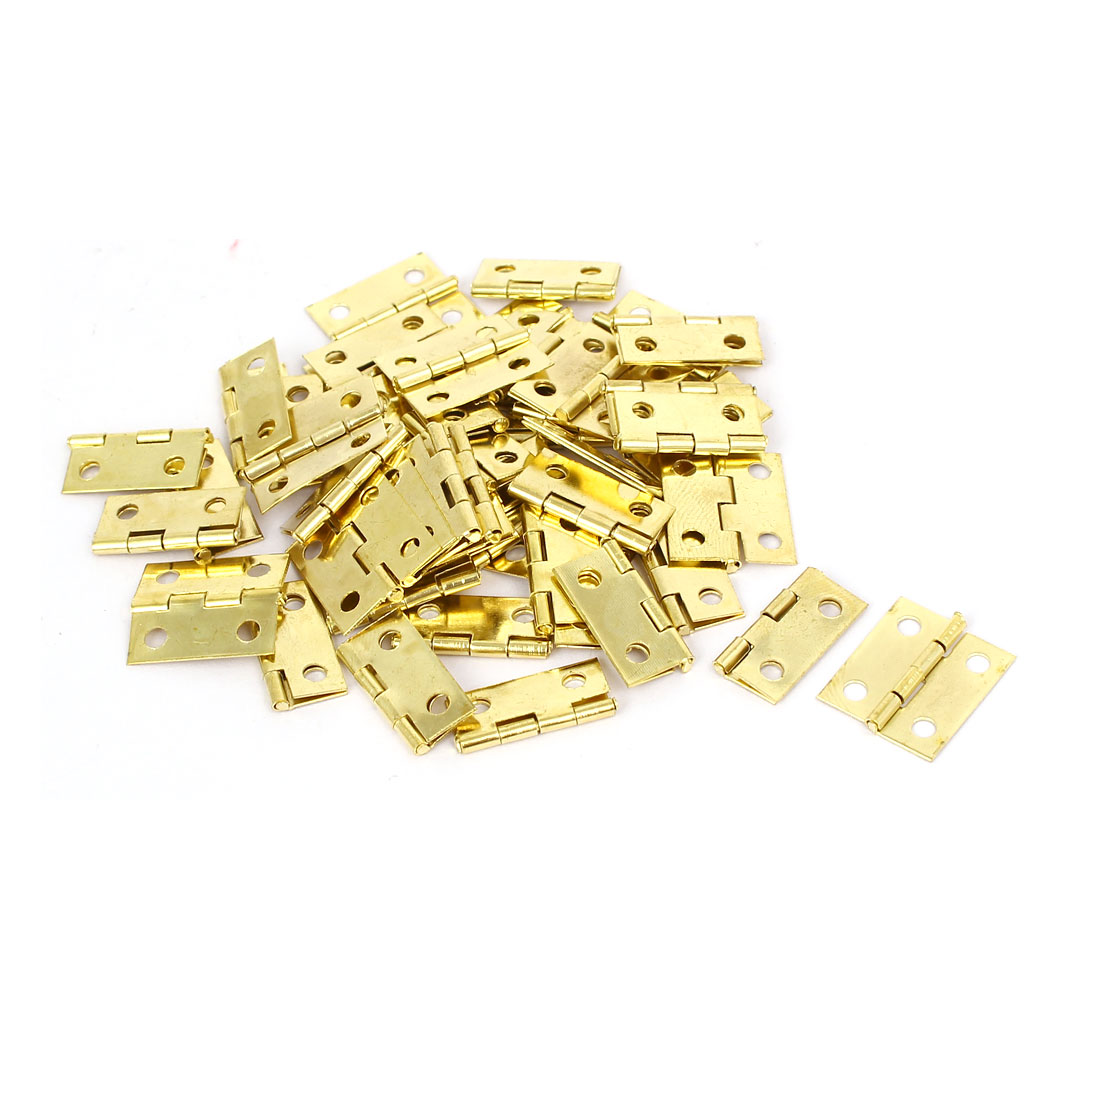 Jewelry Gift Box Wood Case Butt Hinges Gold Tone 18mm Length 50PCS